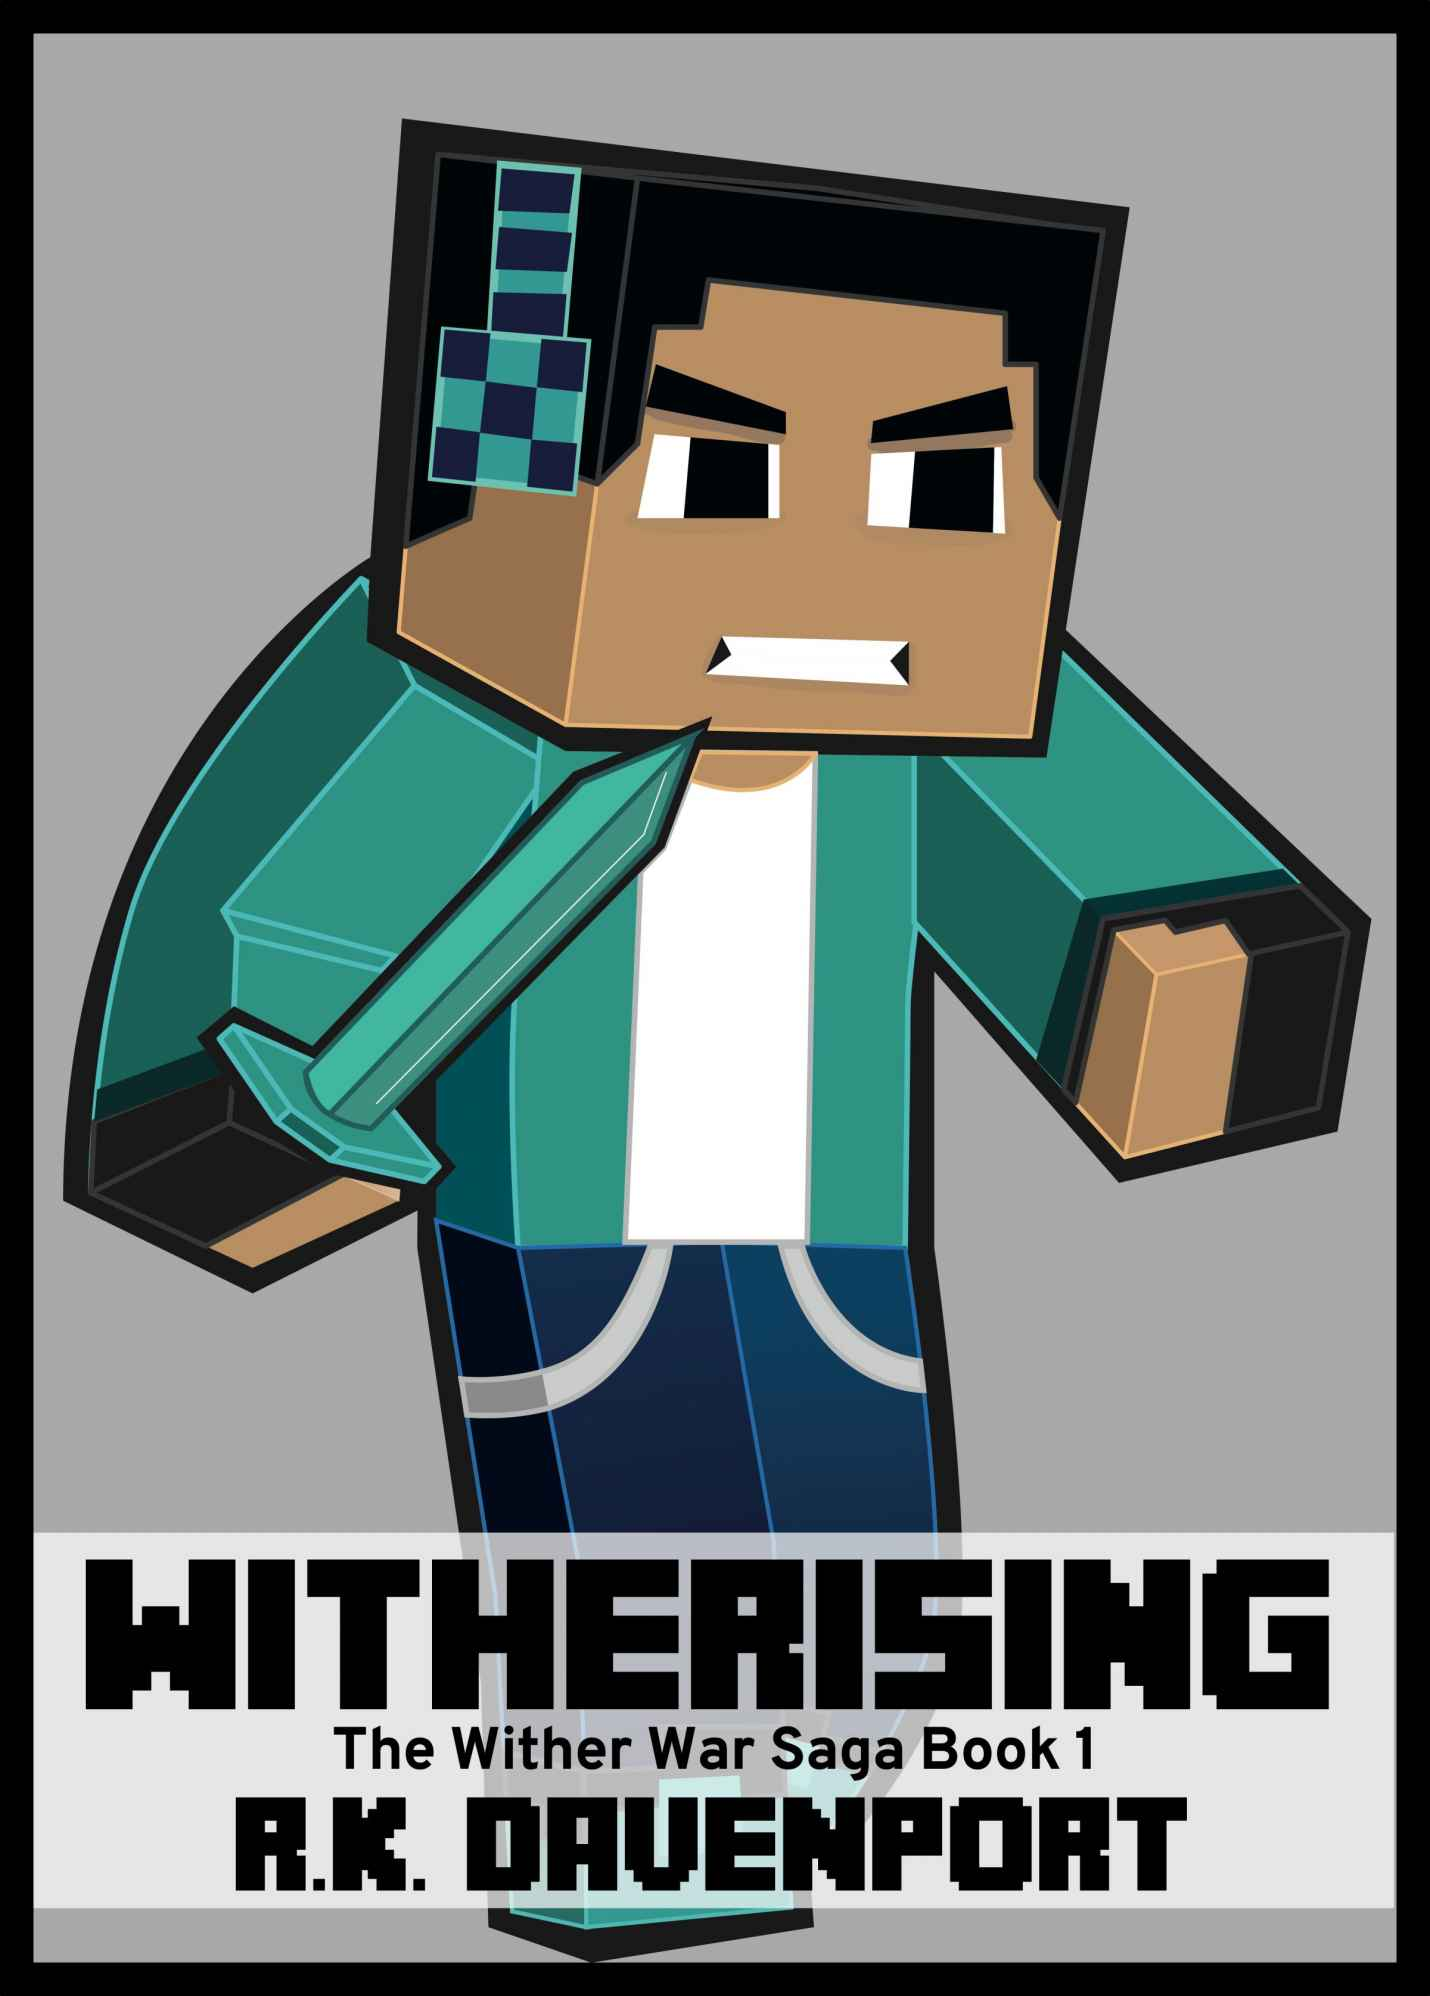 Witherising (The Wither War Saga Book 1) by R.K. Davenport